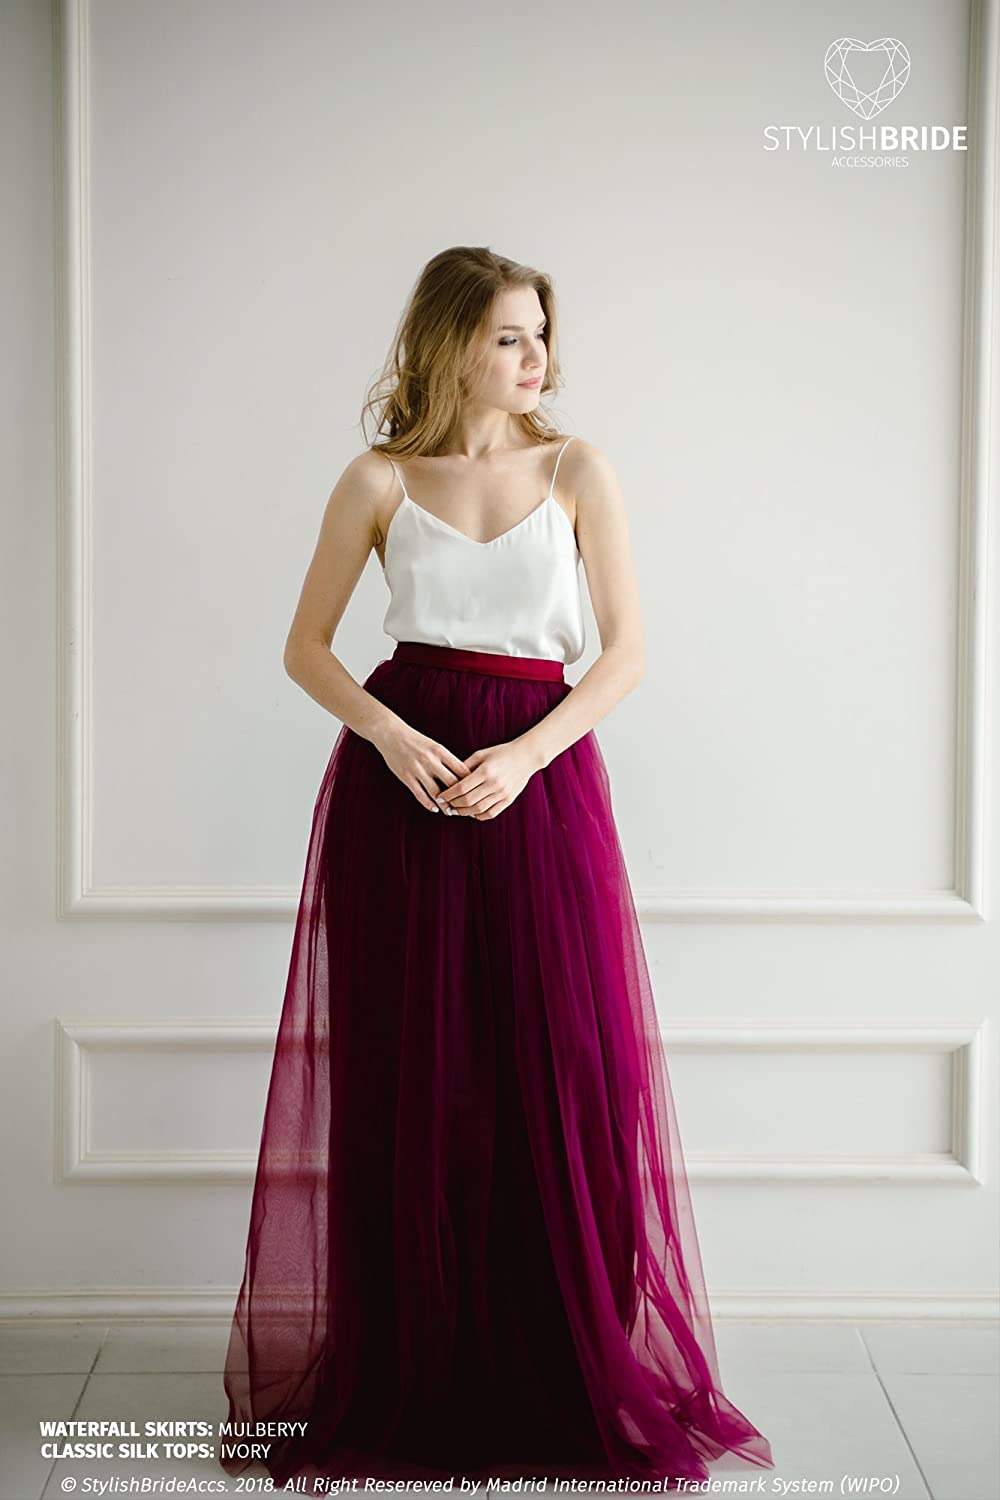 acaef5ae48c7 Amazon.com: Mulberry Bridesmaids Dress with Silk Classic Cami Top and Tulle  Skirt, Wine Long Floor Length Waterfall Tulle Skirt, Prom Wine Dress:  Handmade